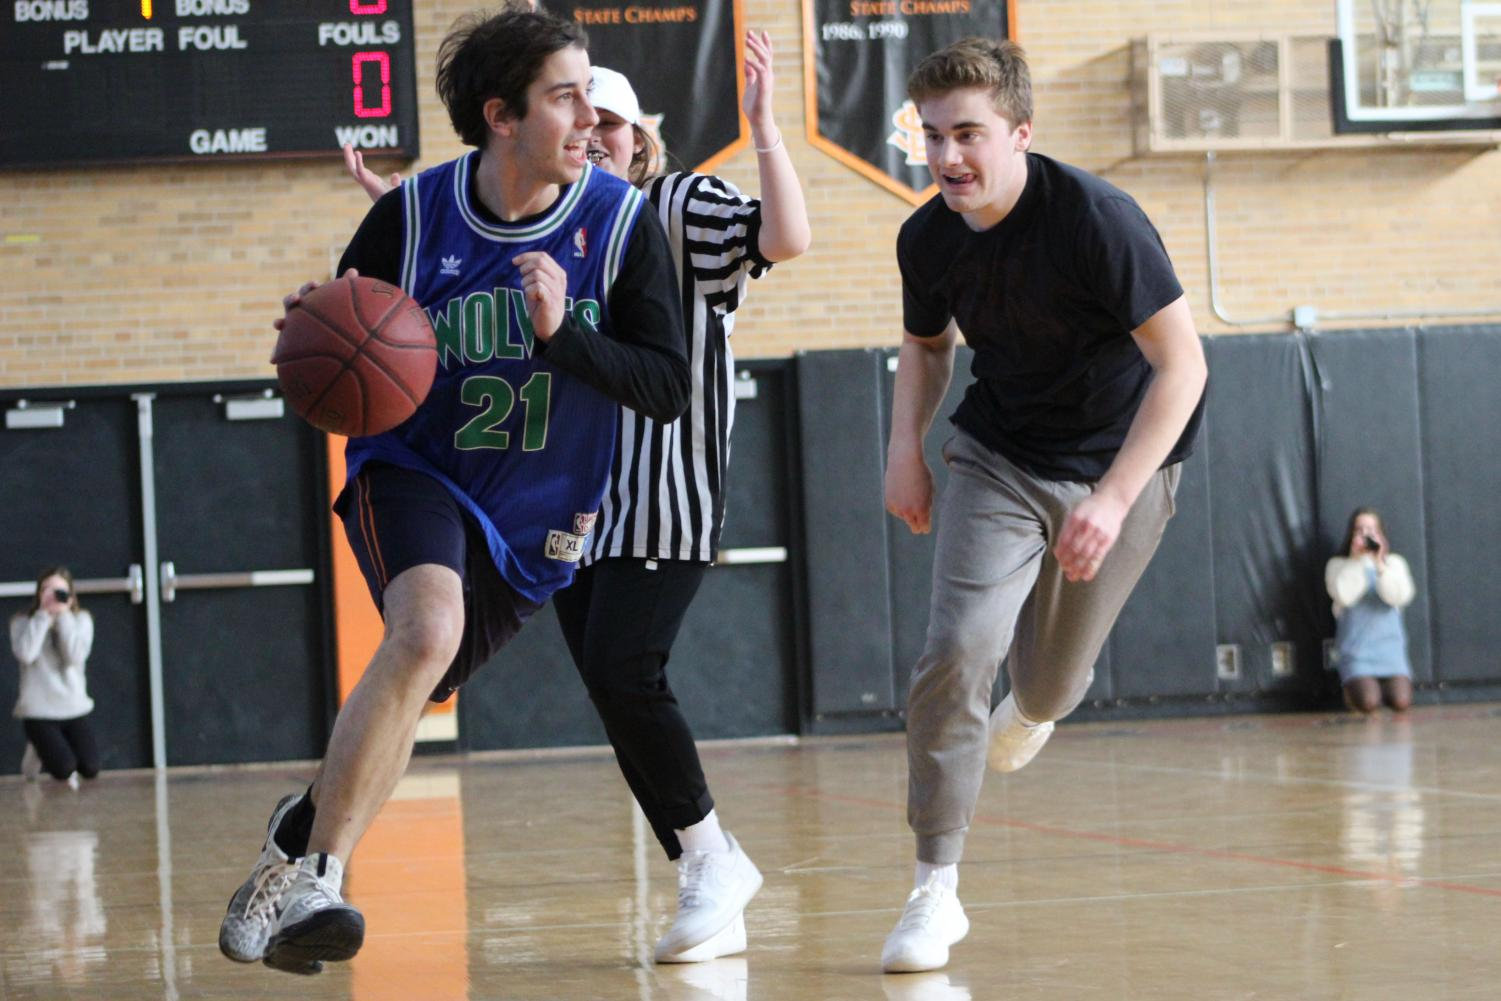 Senior+John+Meyer+dribbles+the+ball+across+the+gym.+During+halftime+three+students+made+an+attempt+at+the+half+court+shot%2C+none+of+them+made+it+in+the+basket.+